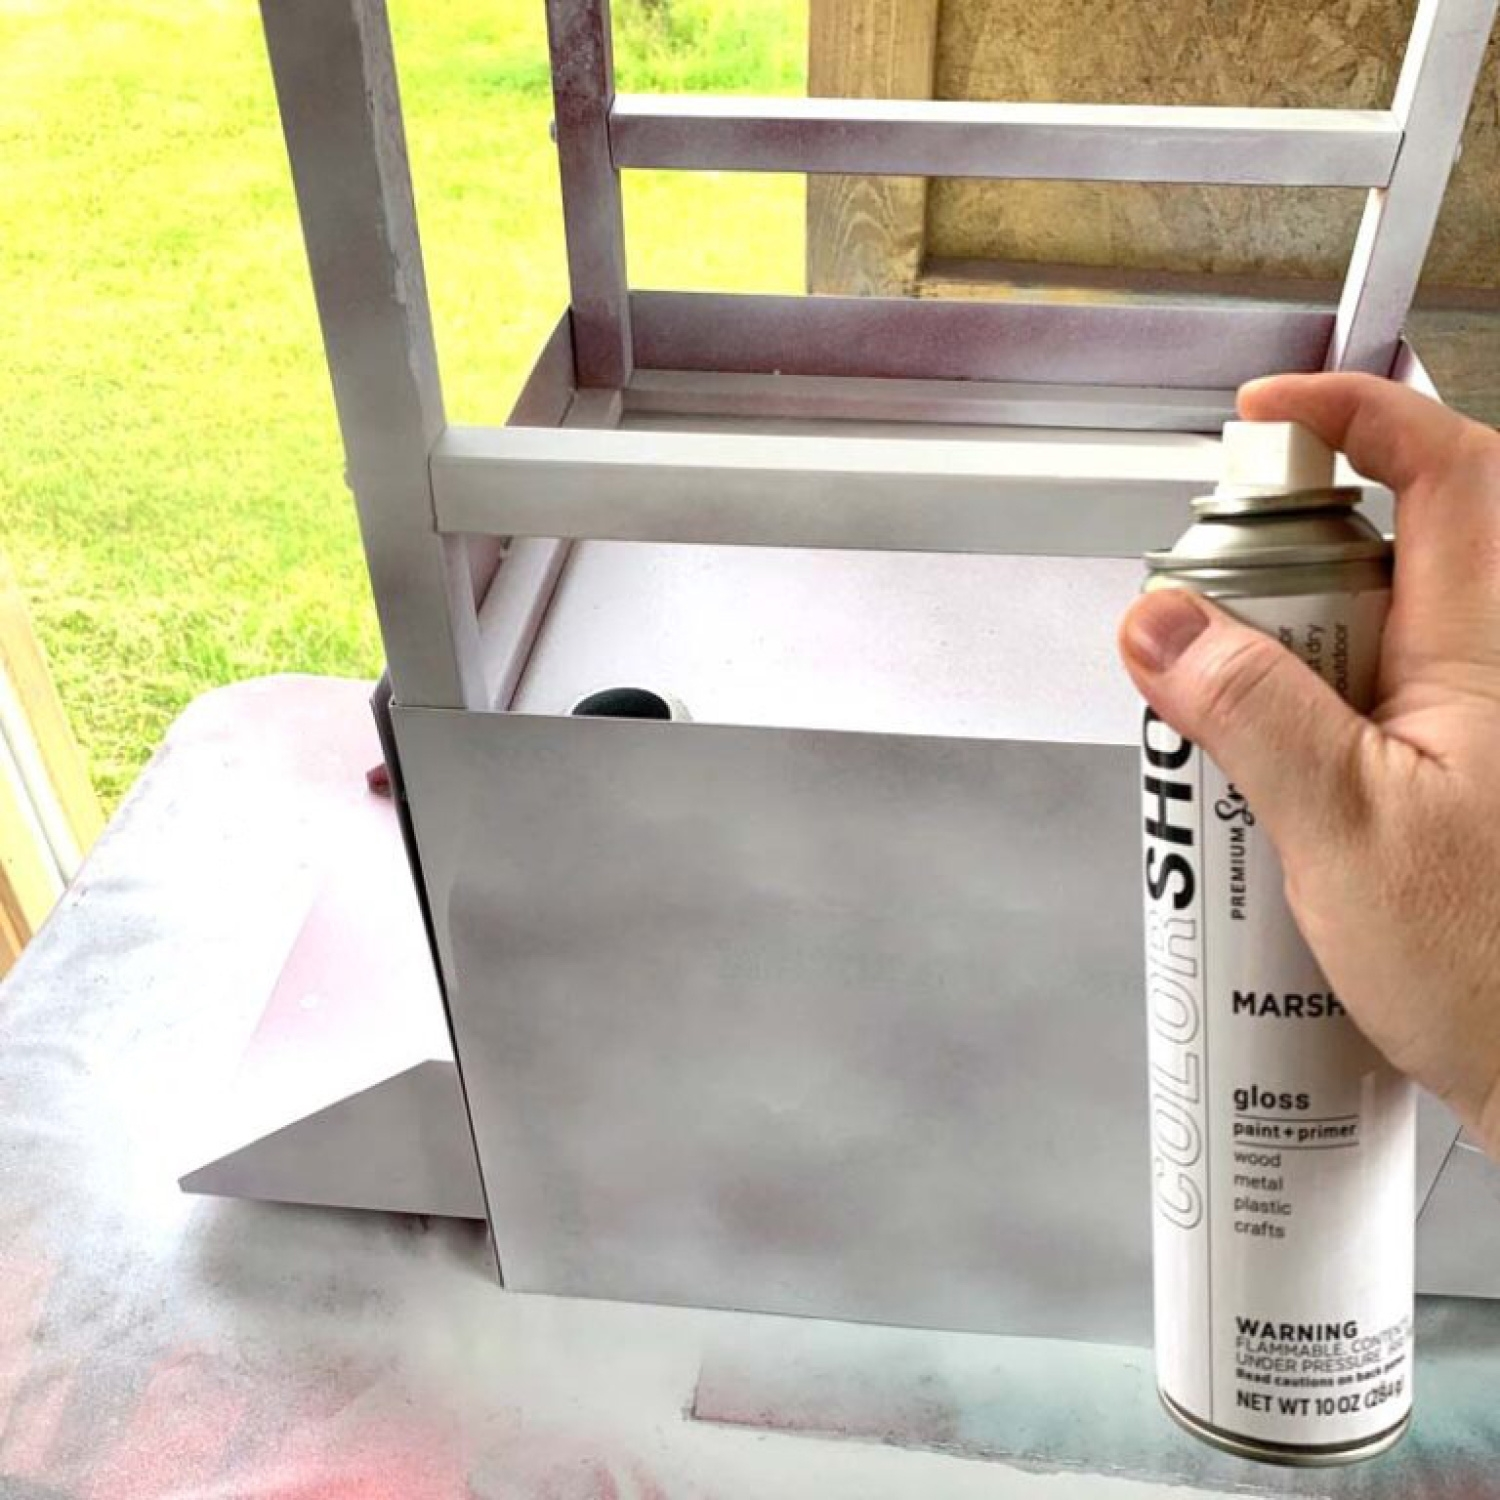 Spray paint cart in desired colors